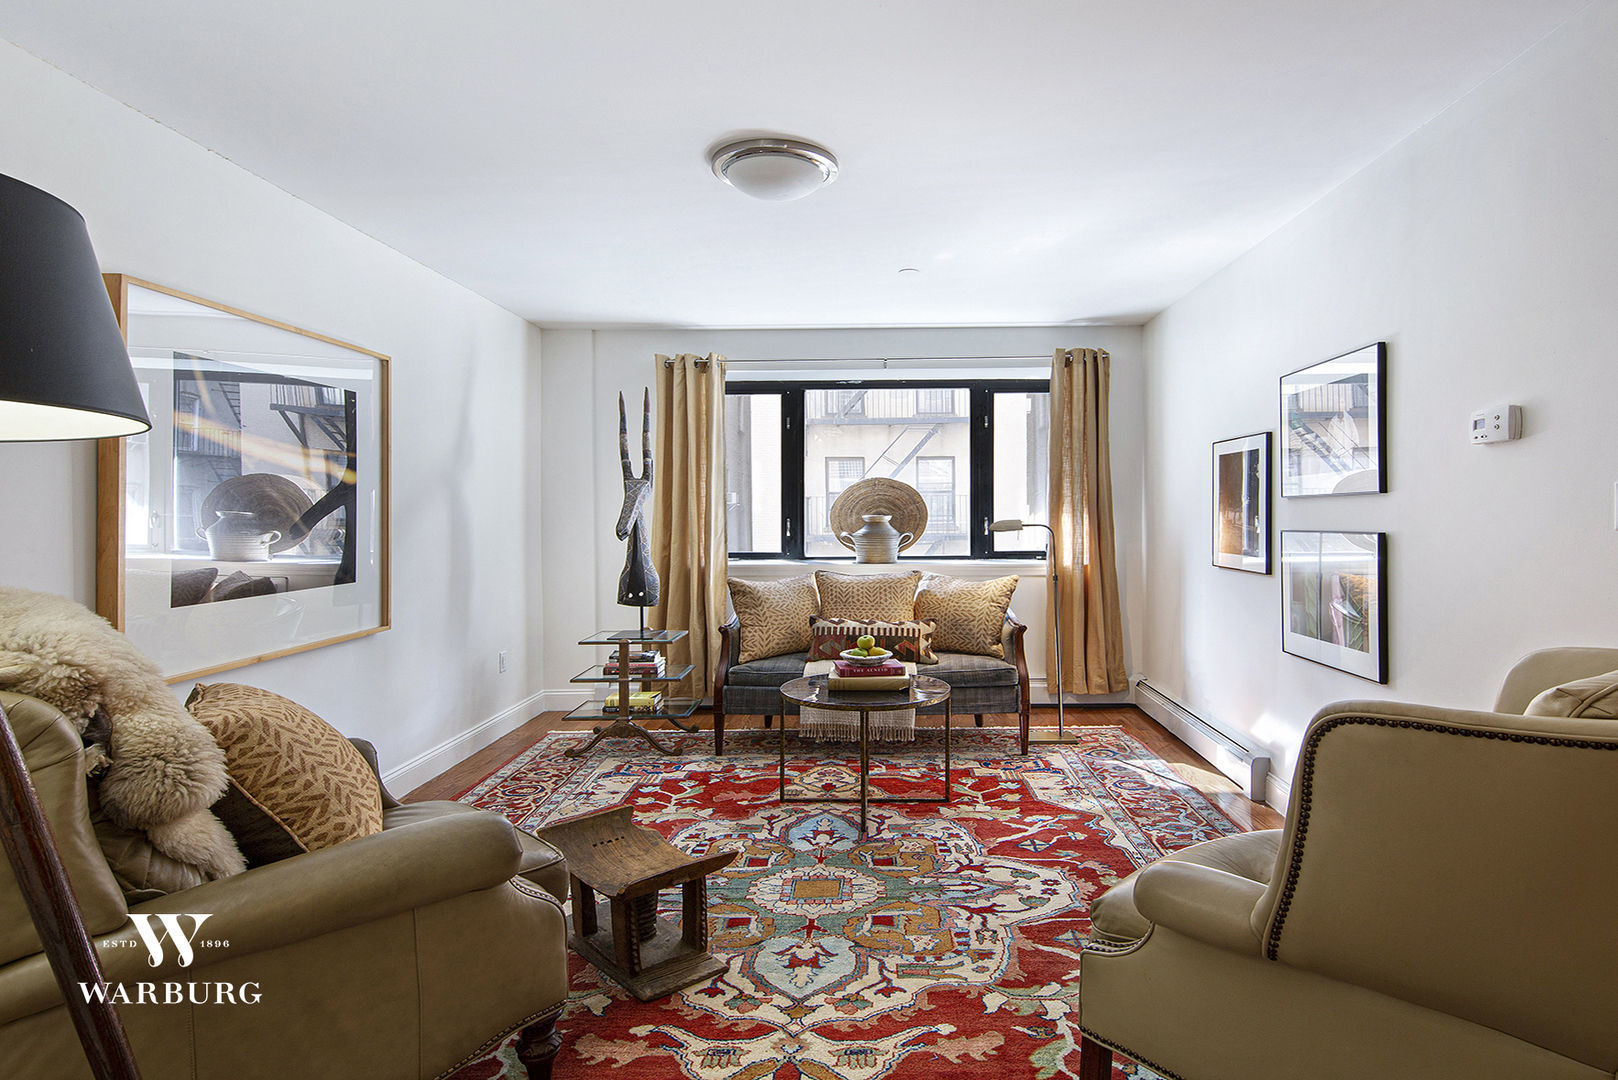 Apartment for sale at 456 West 167th Street, Apt 2C